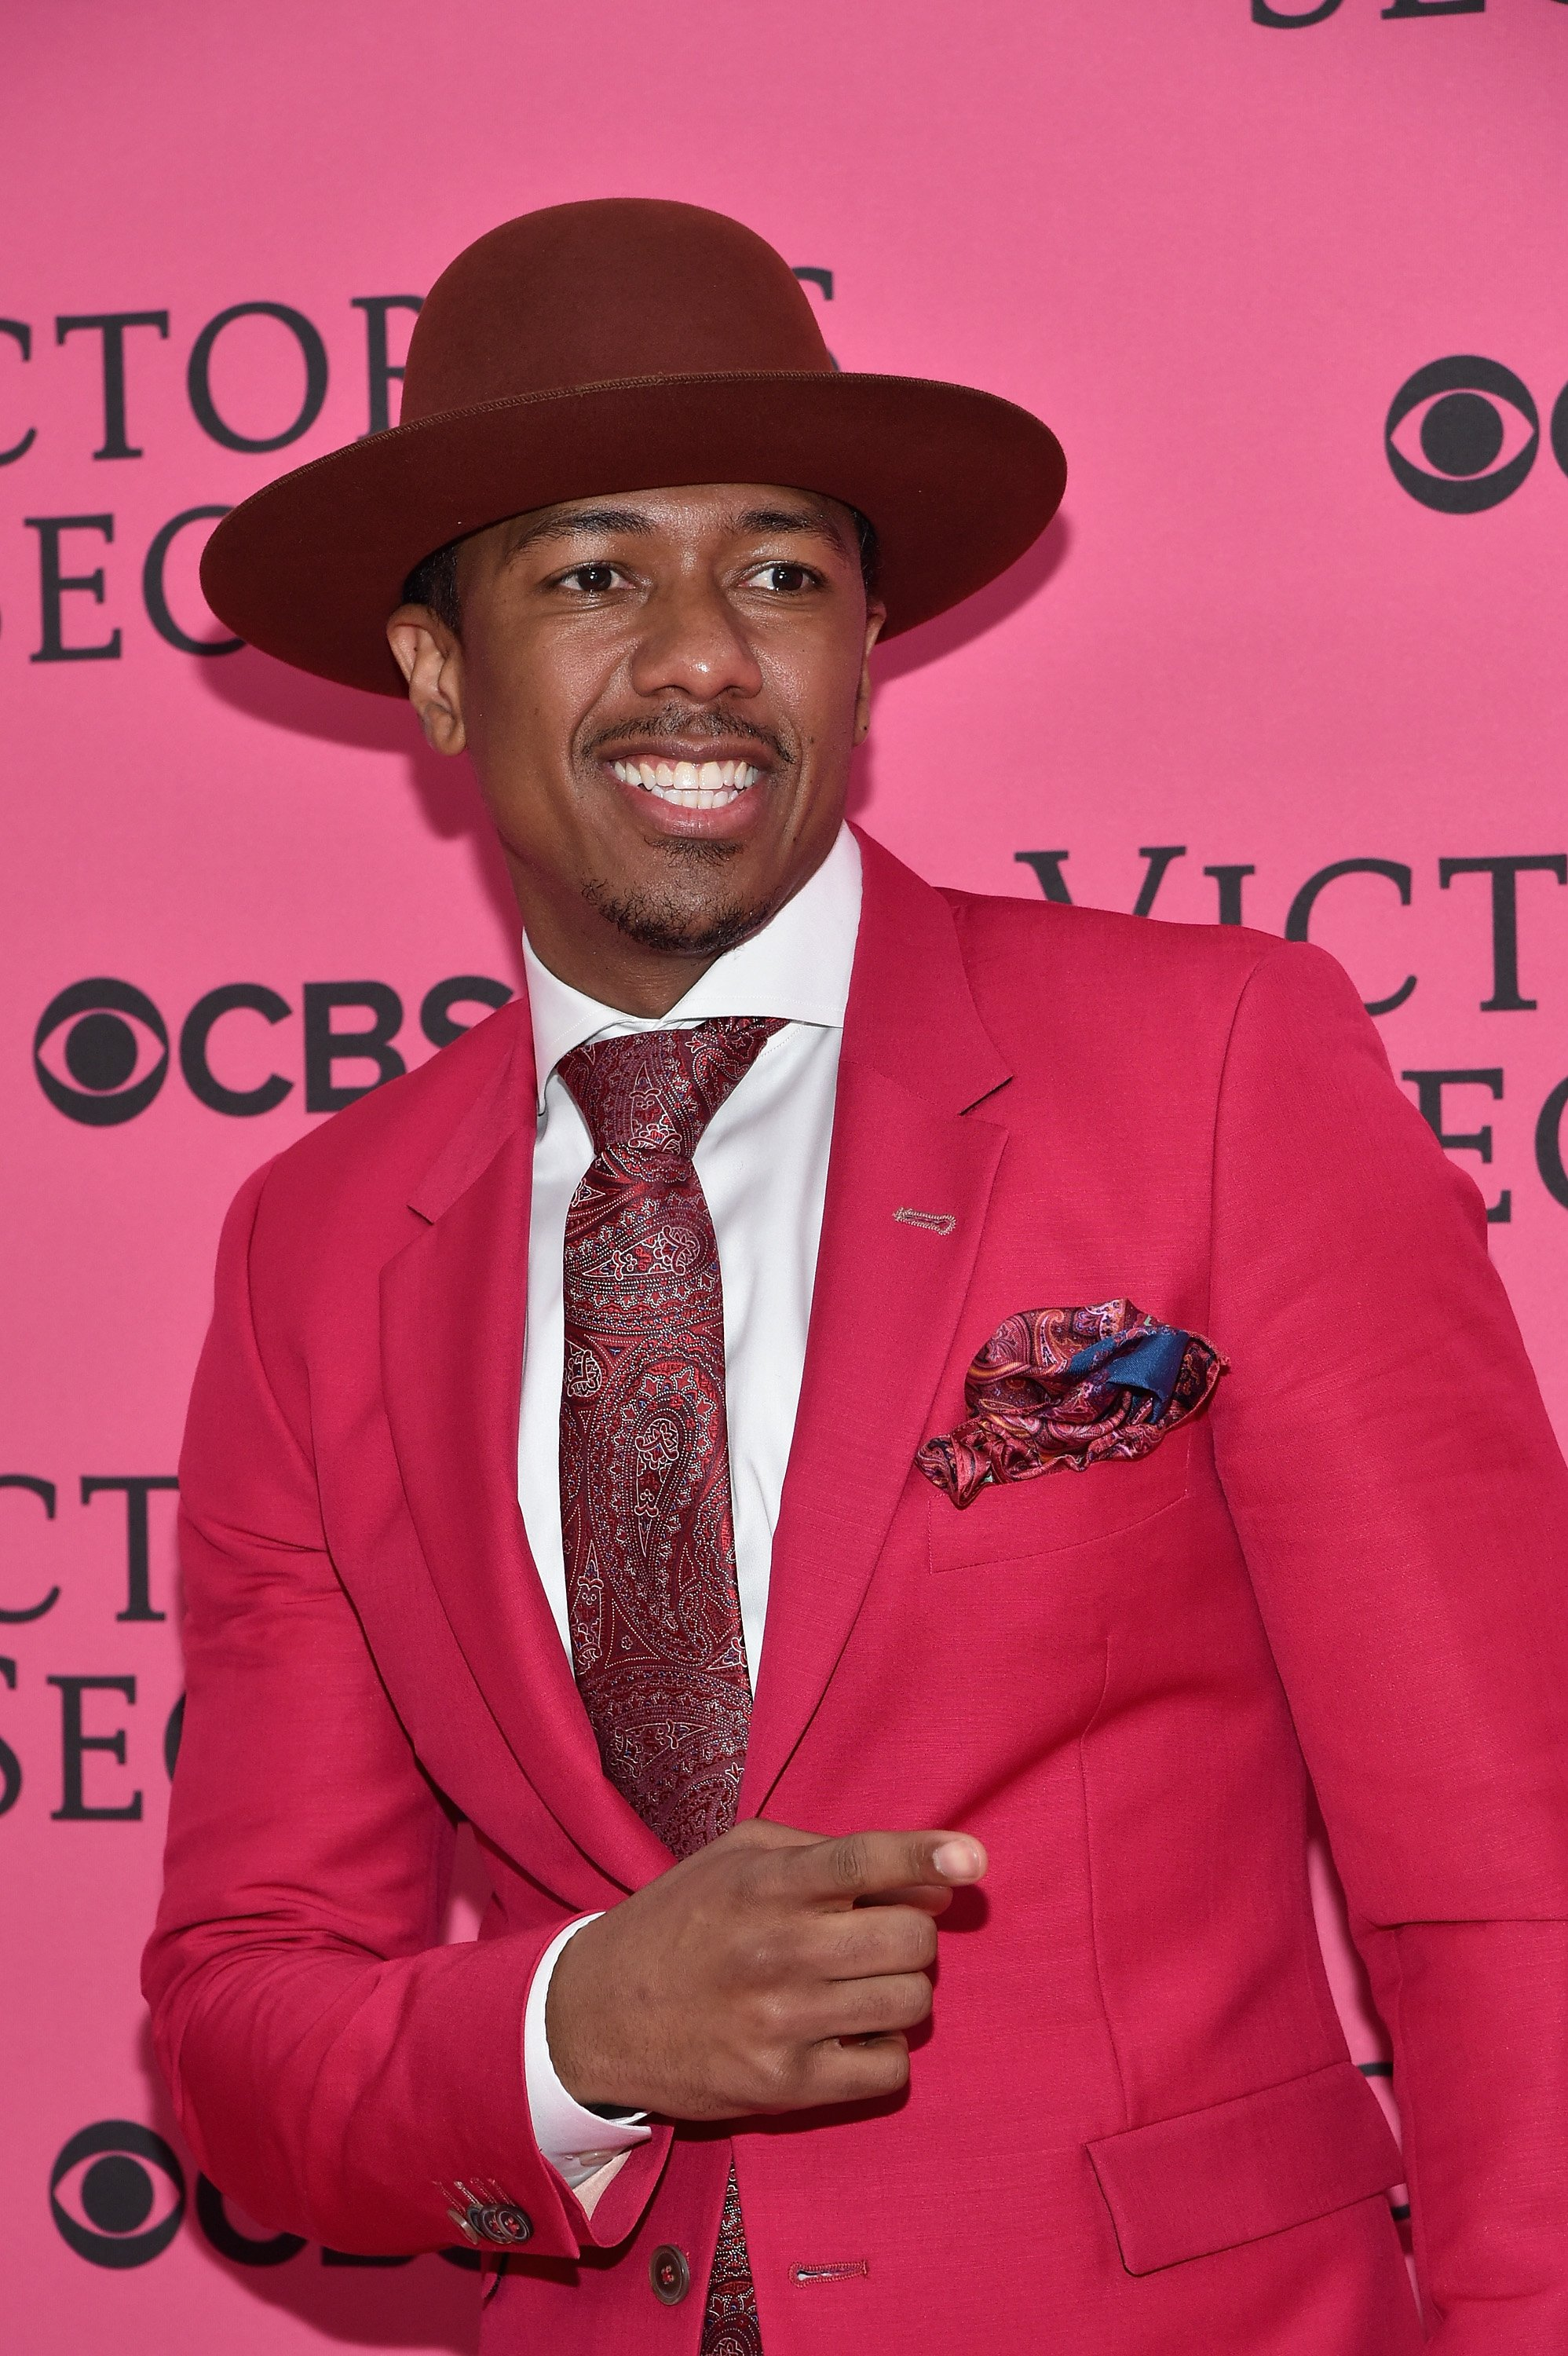 Nick Cannon poses at the 2015 Victoria's Secret Fashion Show on November 10, 2015 in New York City. | Source: Getty Images